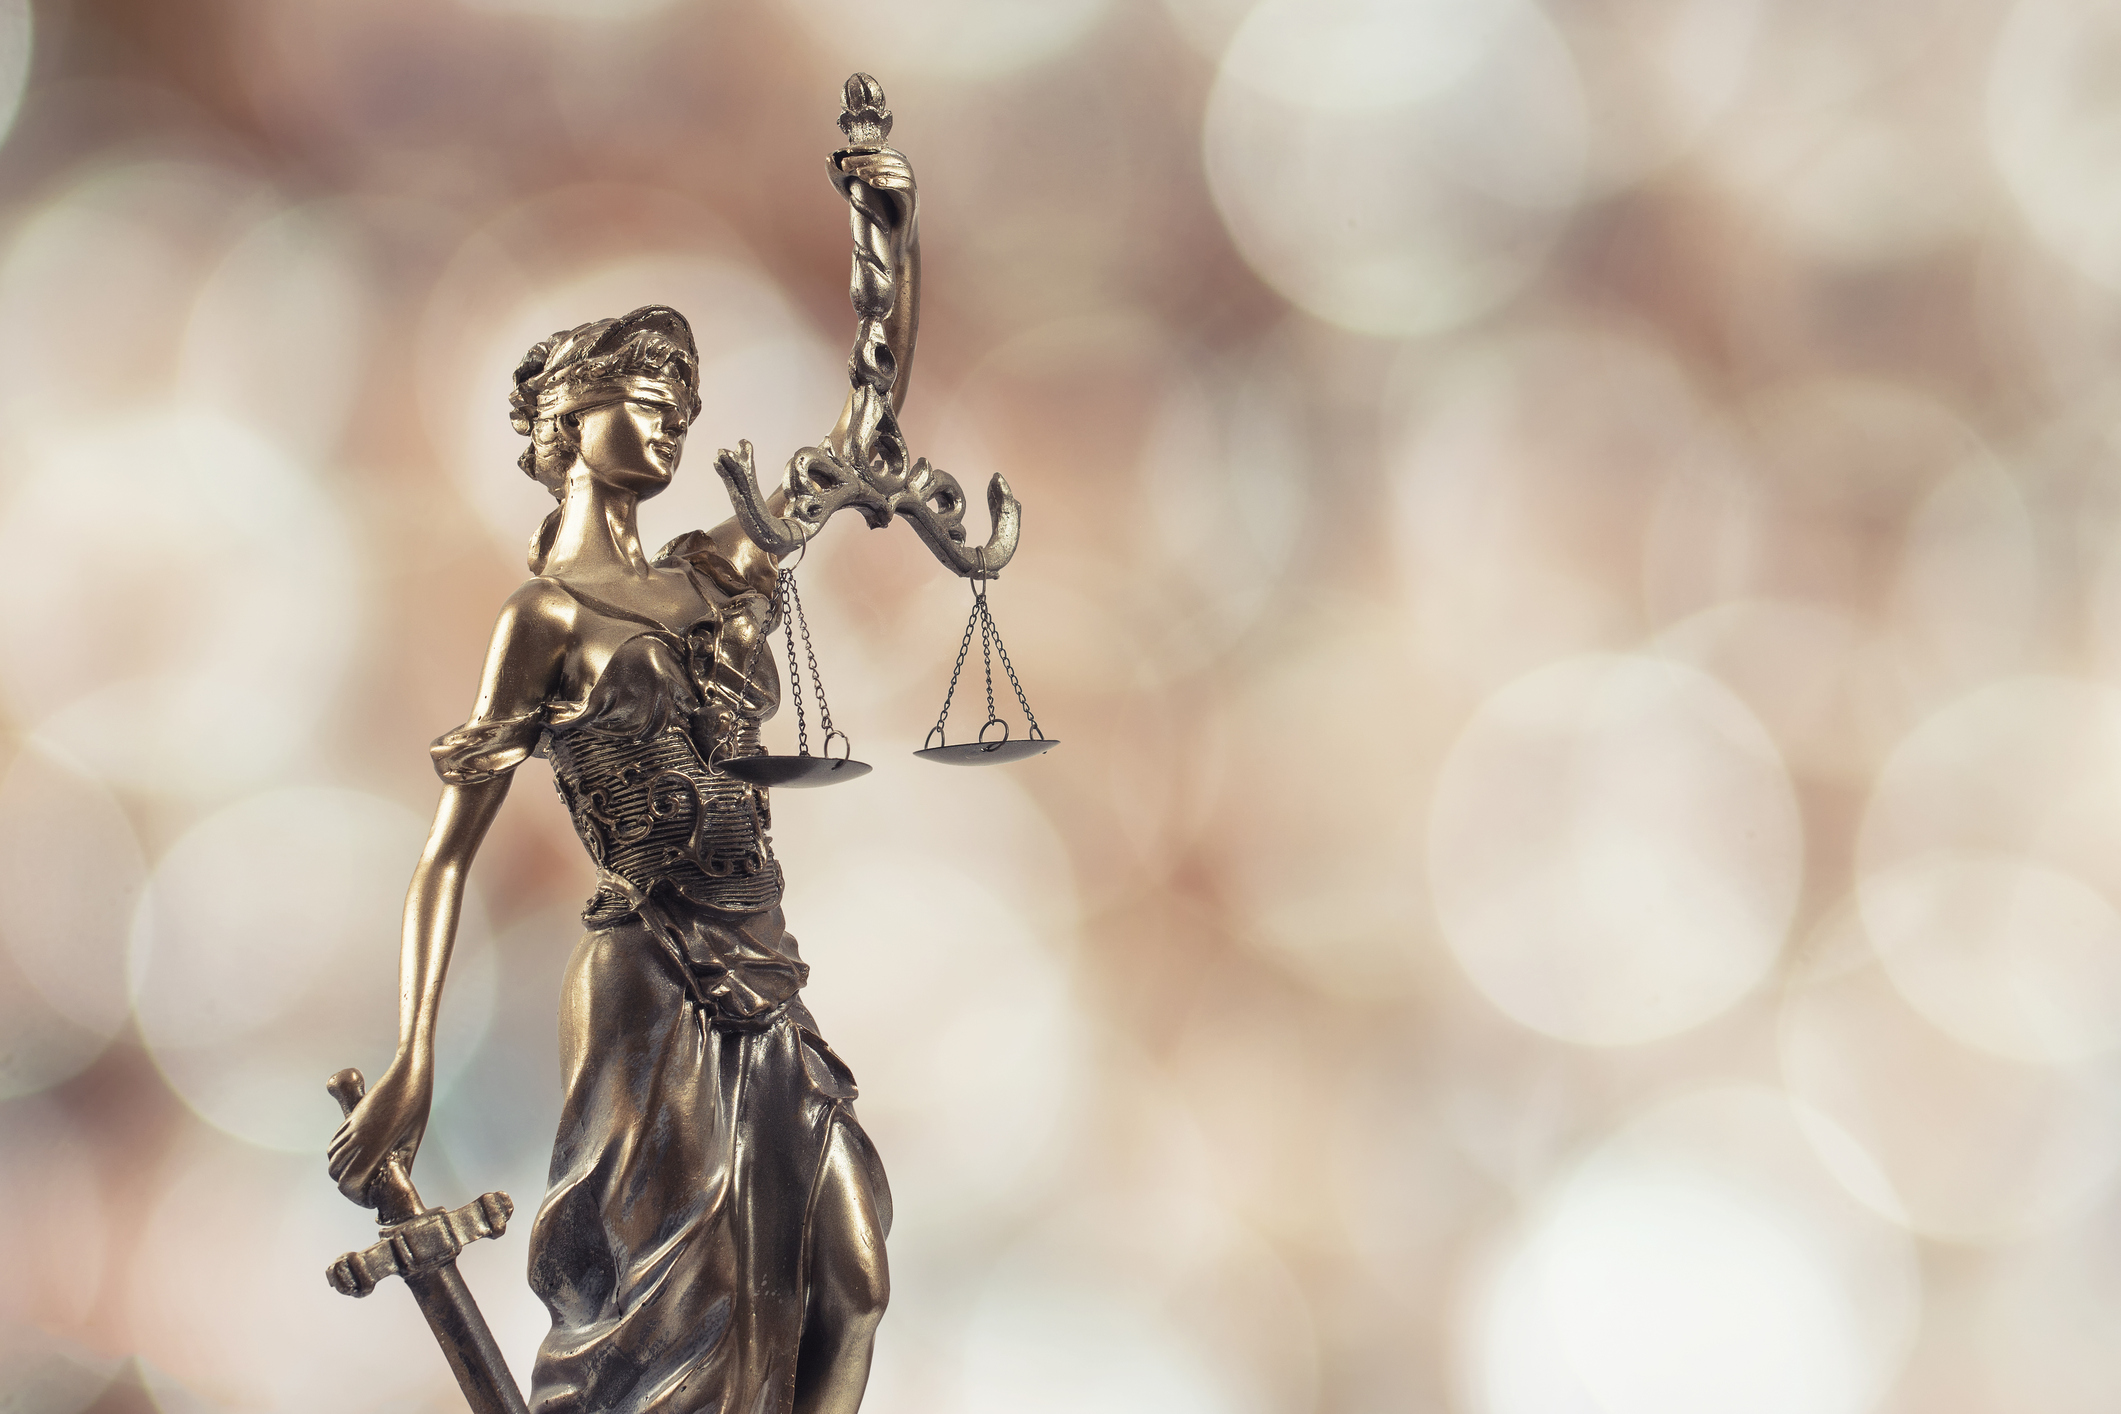 Statue of justice on Bokeh background